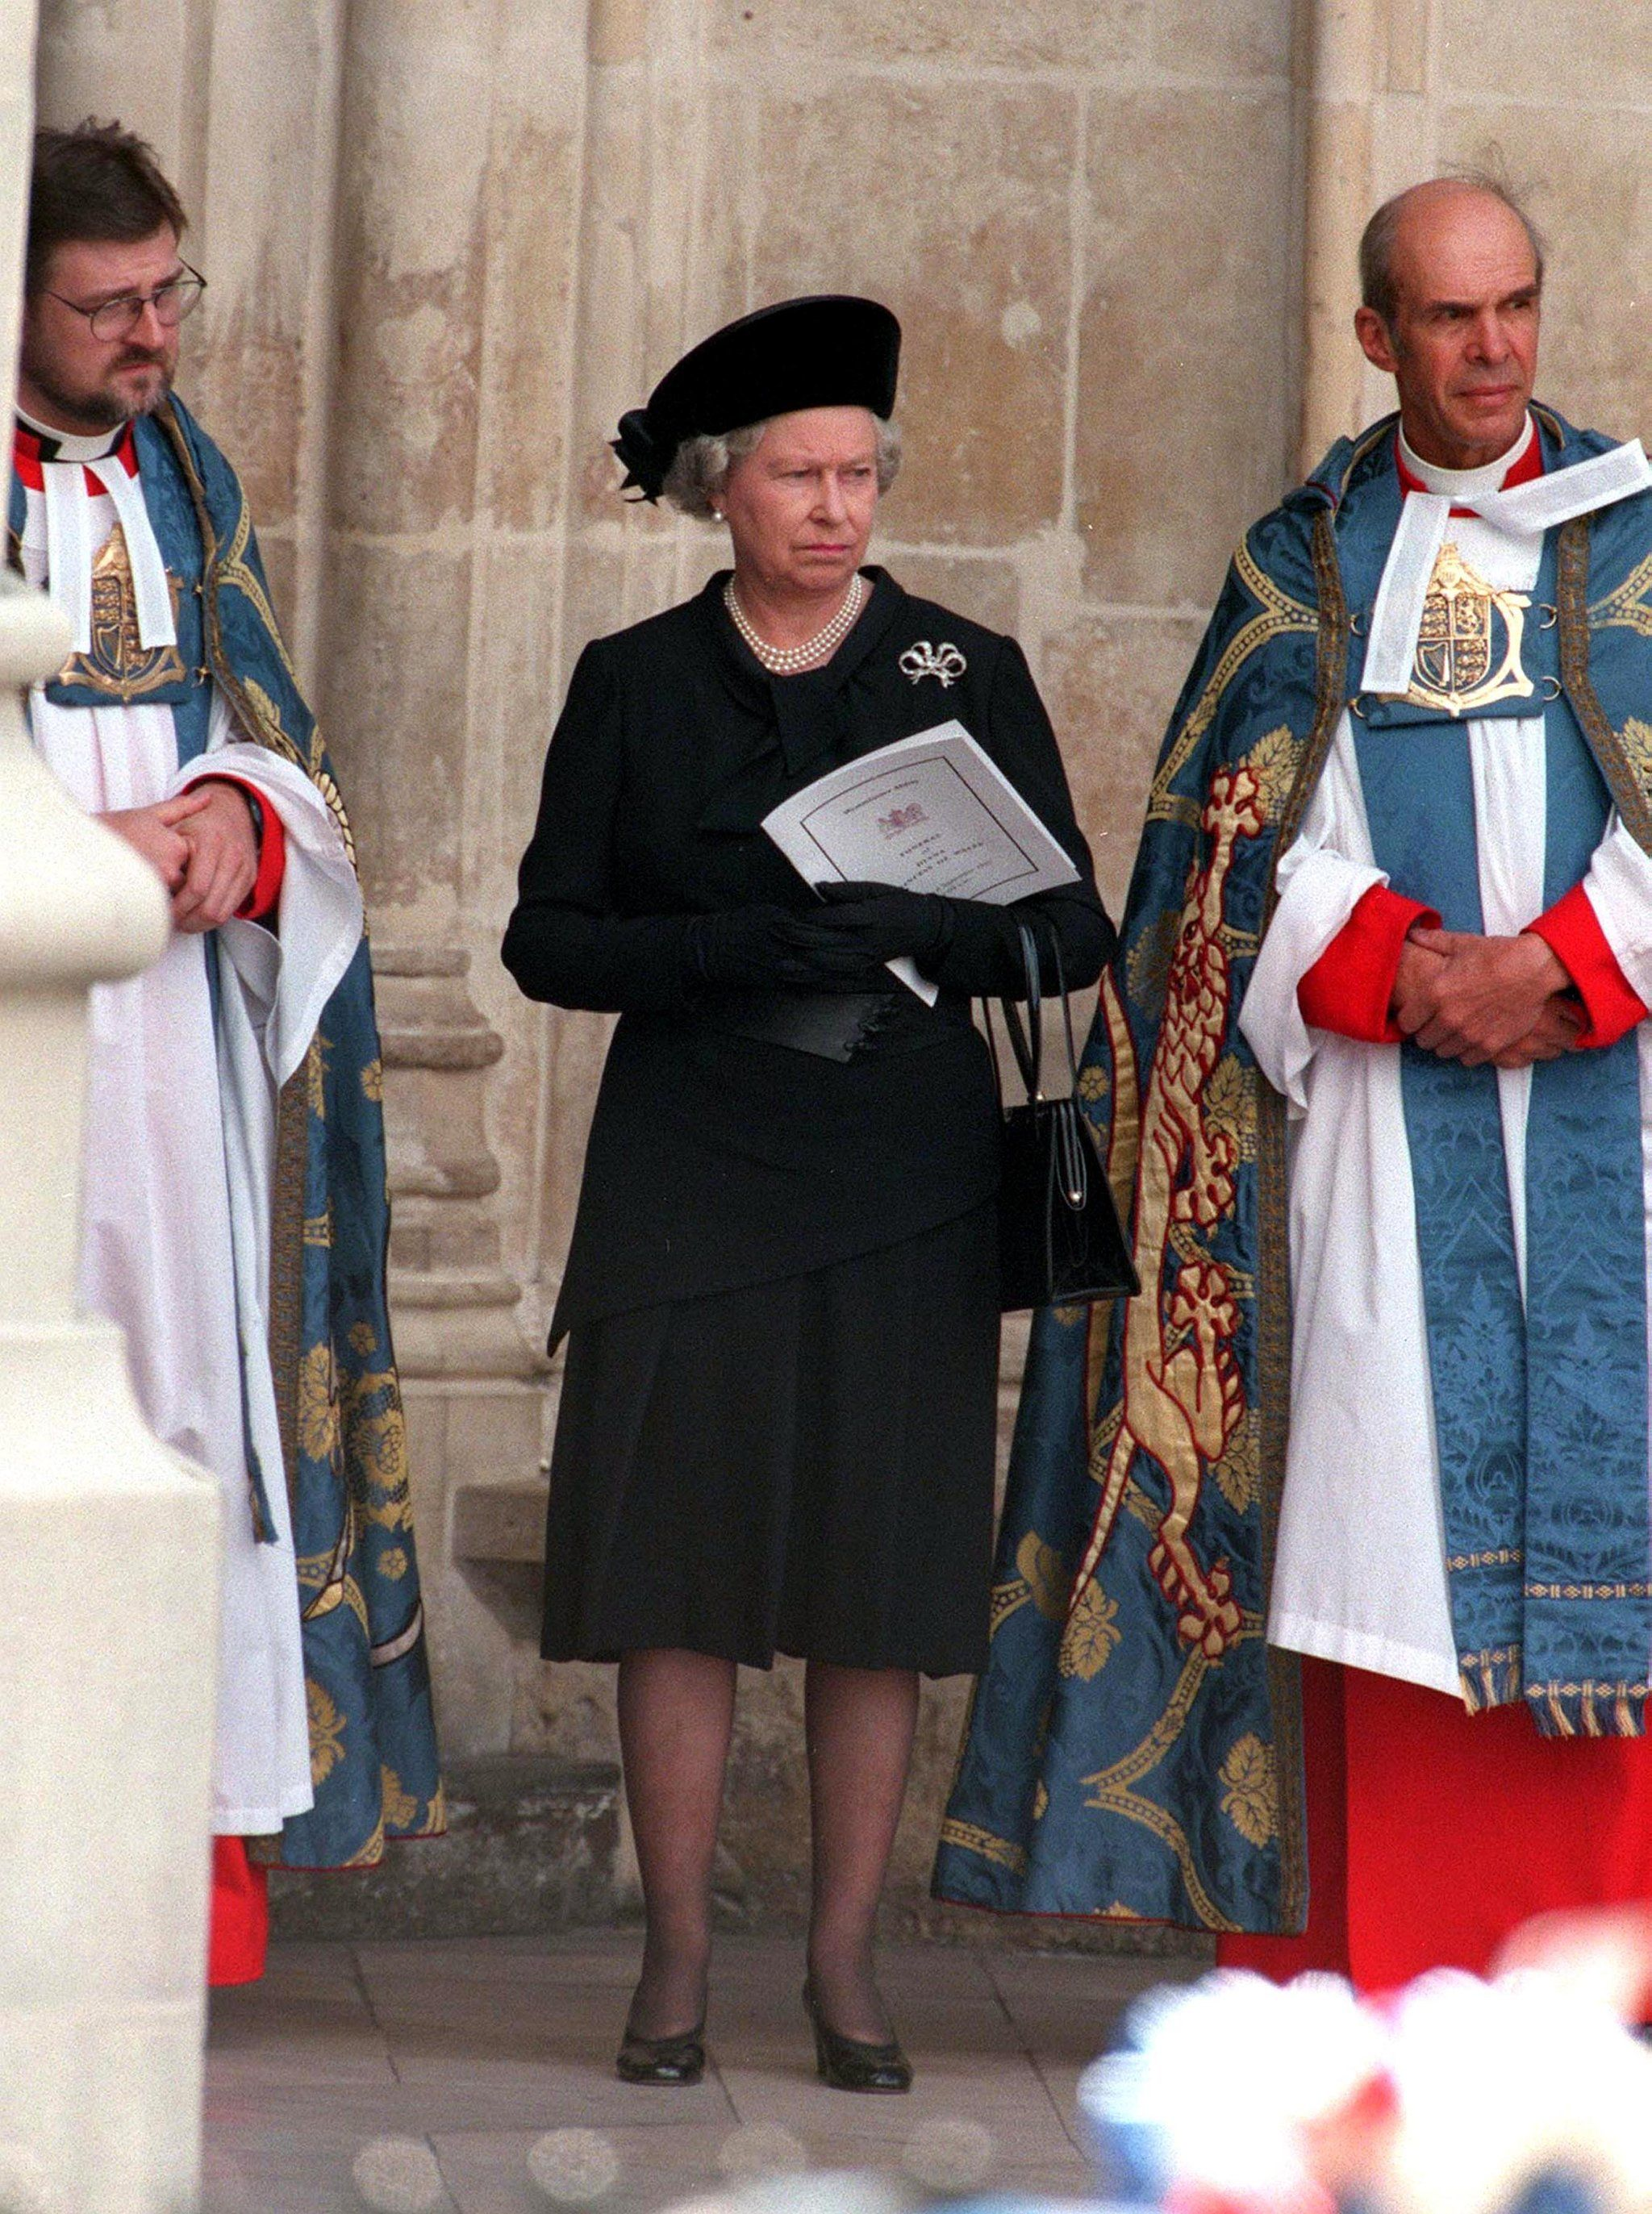 The Rare, Unexpected Gesture Queen Elizabeth II Made at